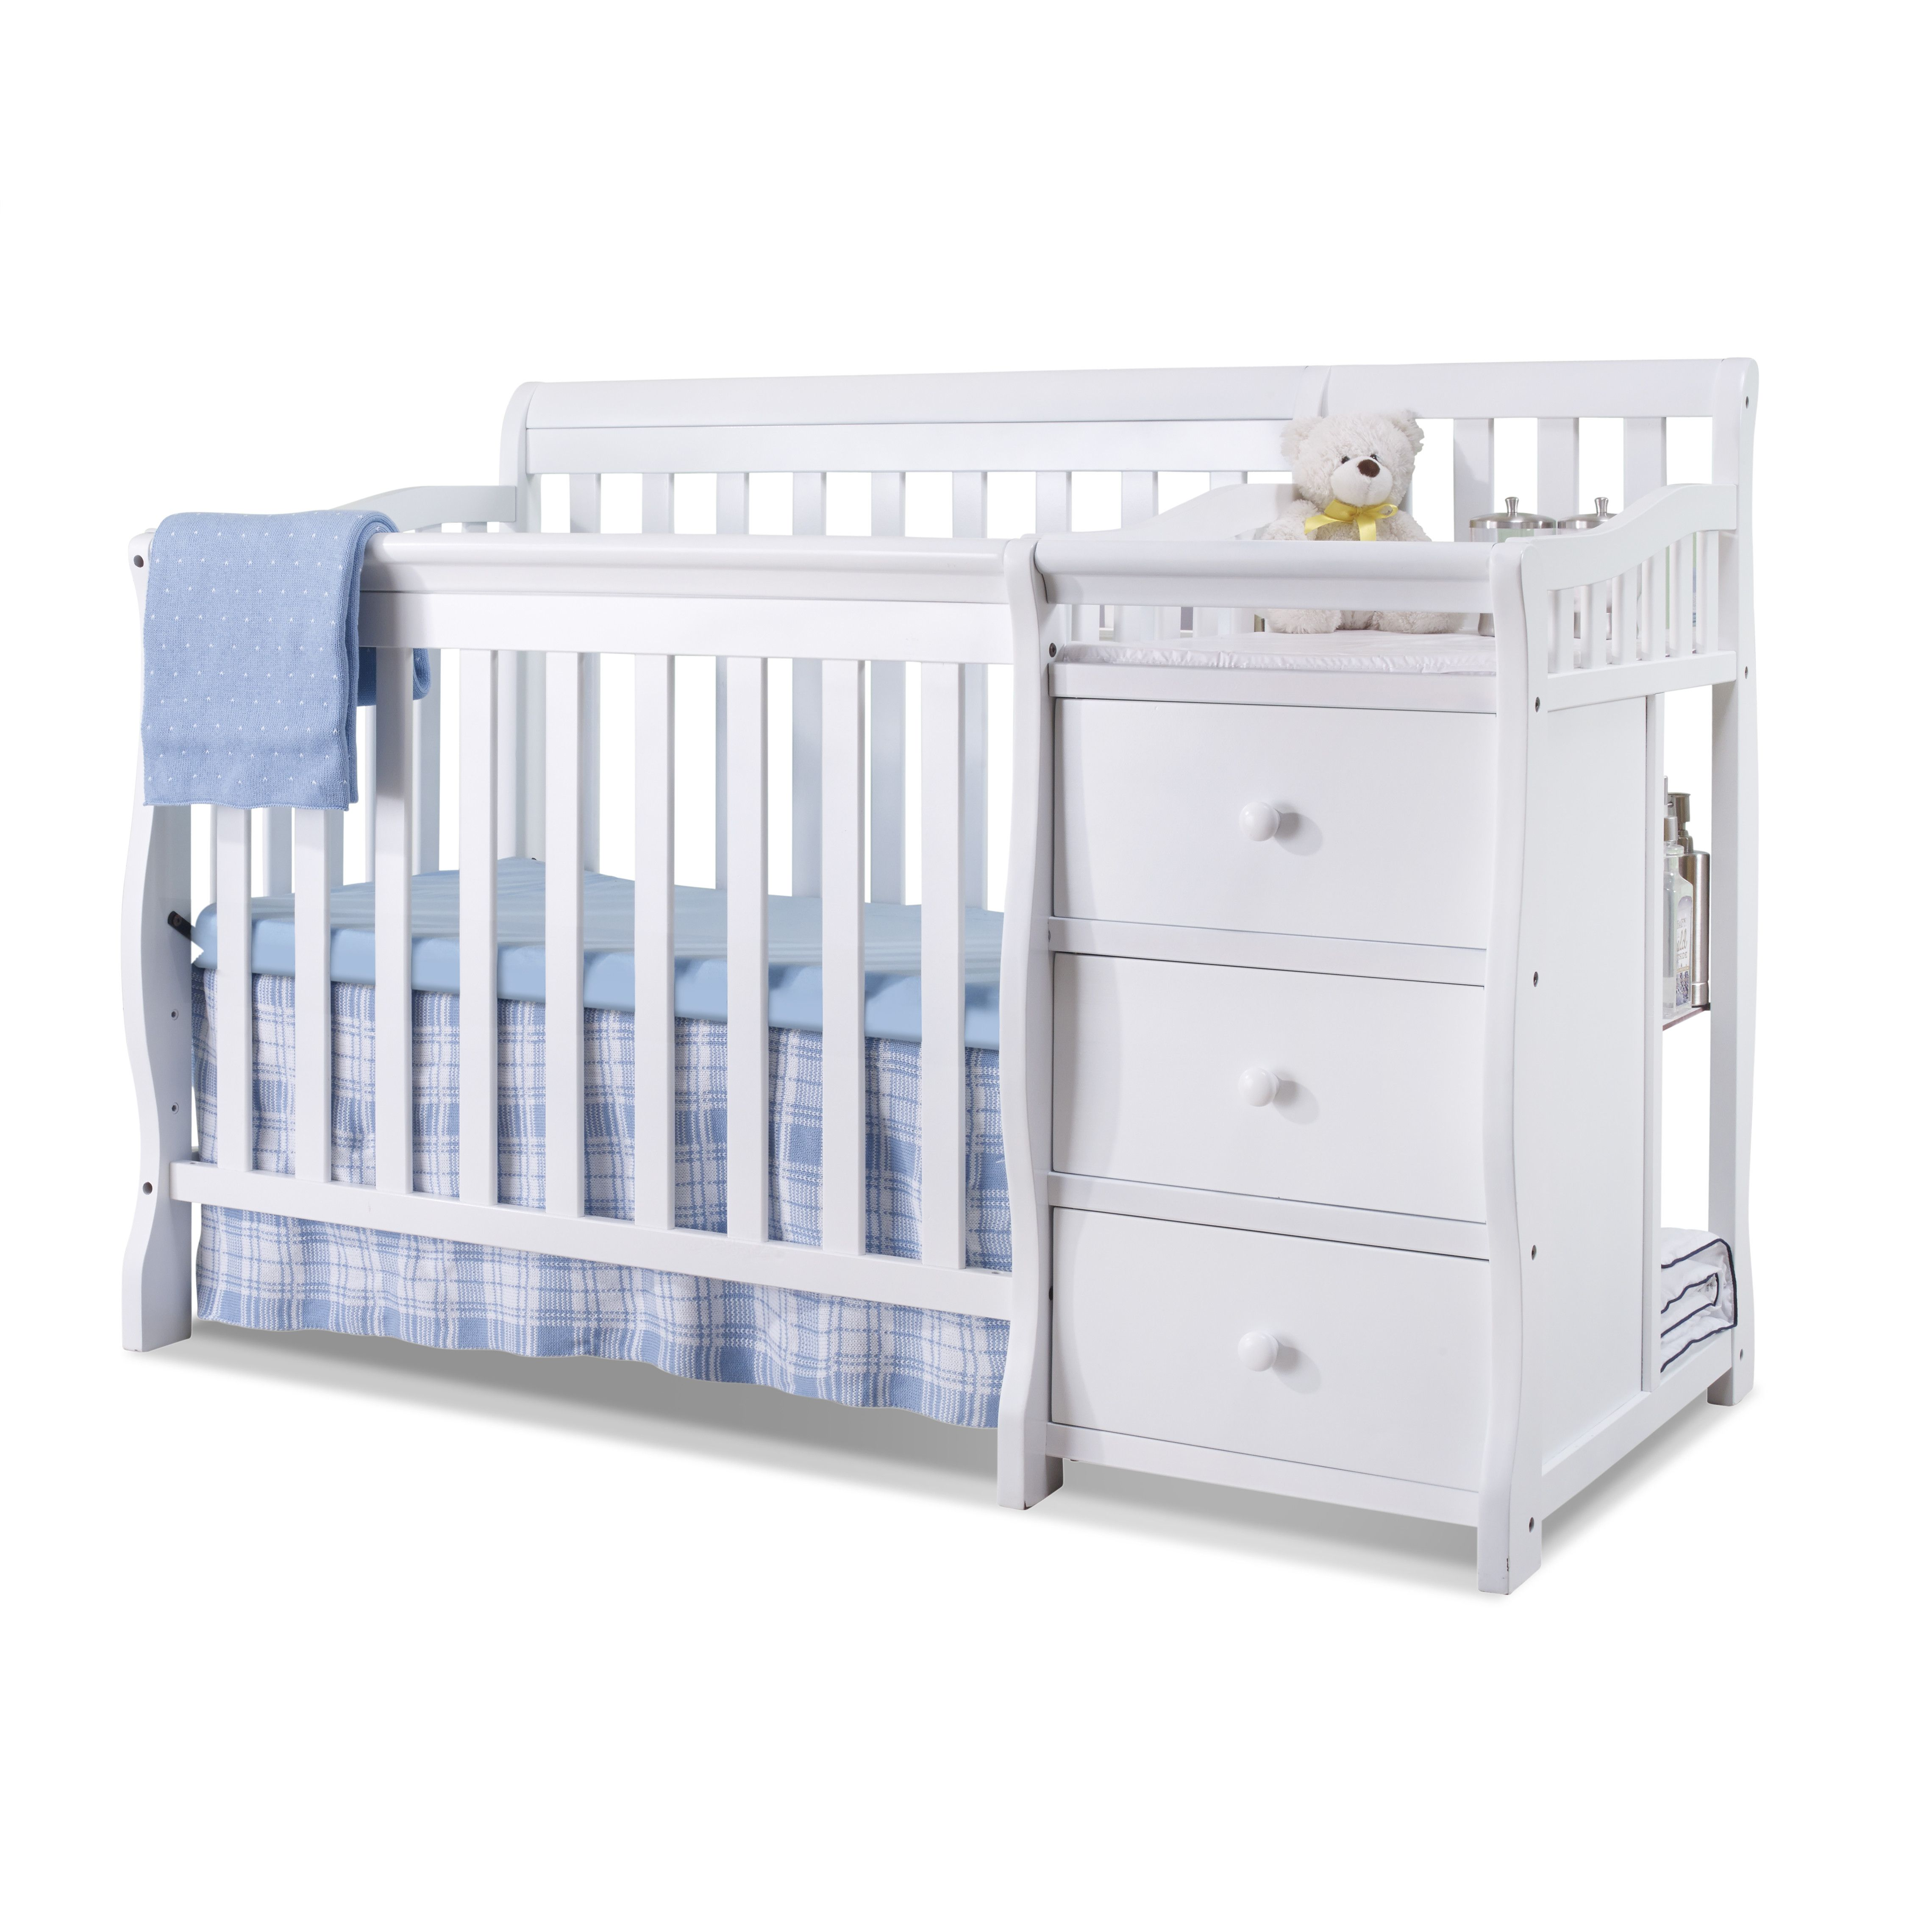 nursery ah babyletto design classic inspirational rail along hudson plus convertible together cribs with modo baby plush mini crib toddler from hayneedle furniture r at exquisite